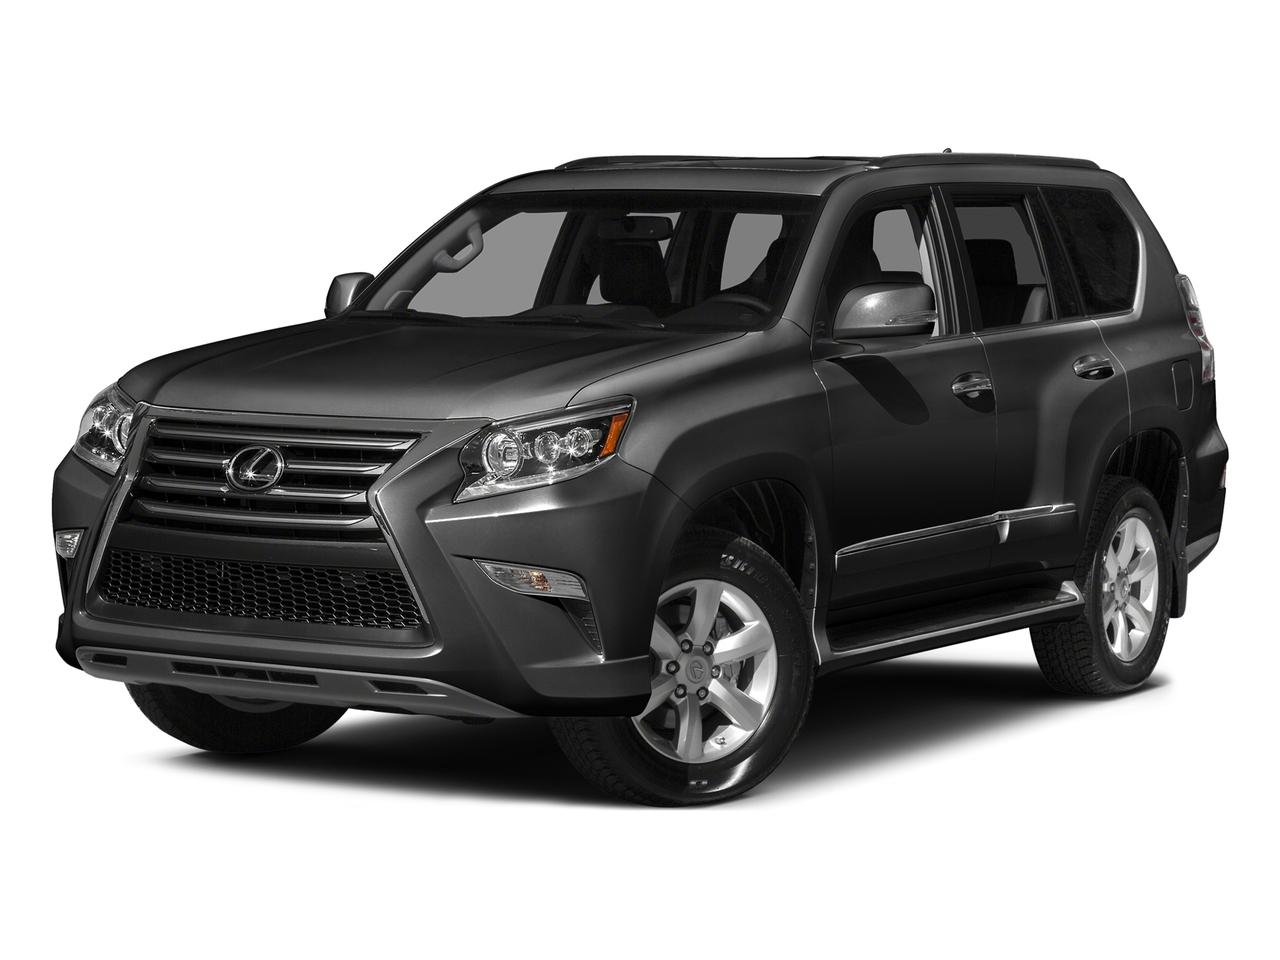 2015 Lexus GX 460 Vehicle Photo in Houston, TX 77546